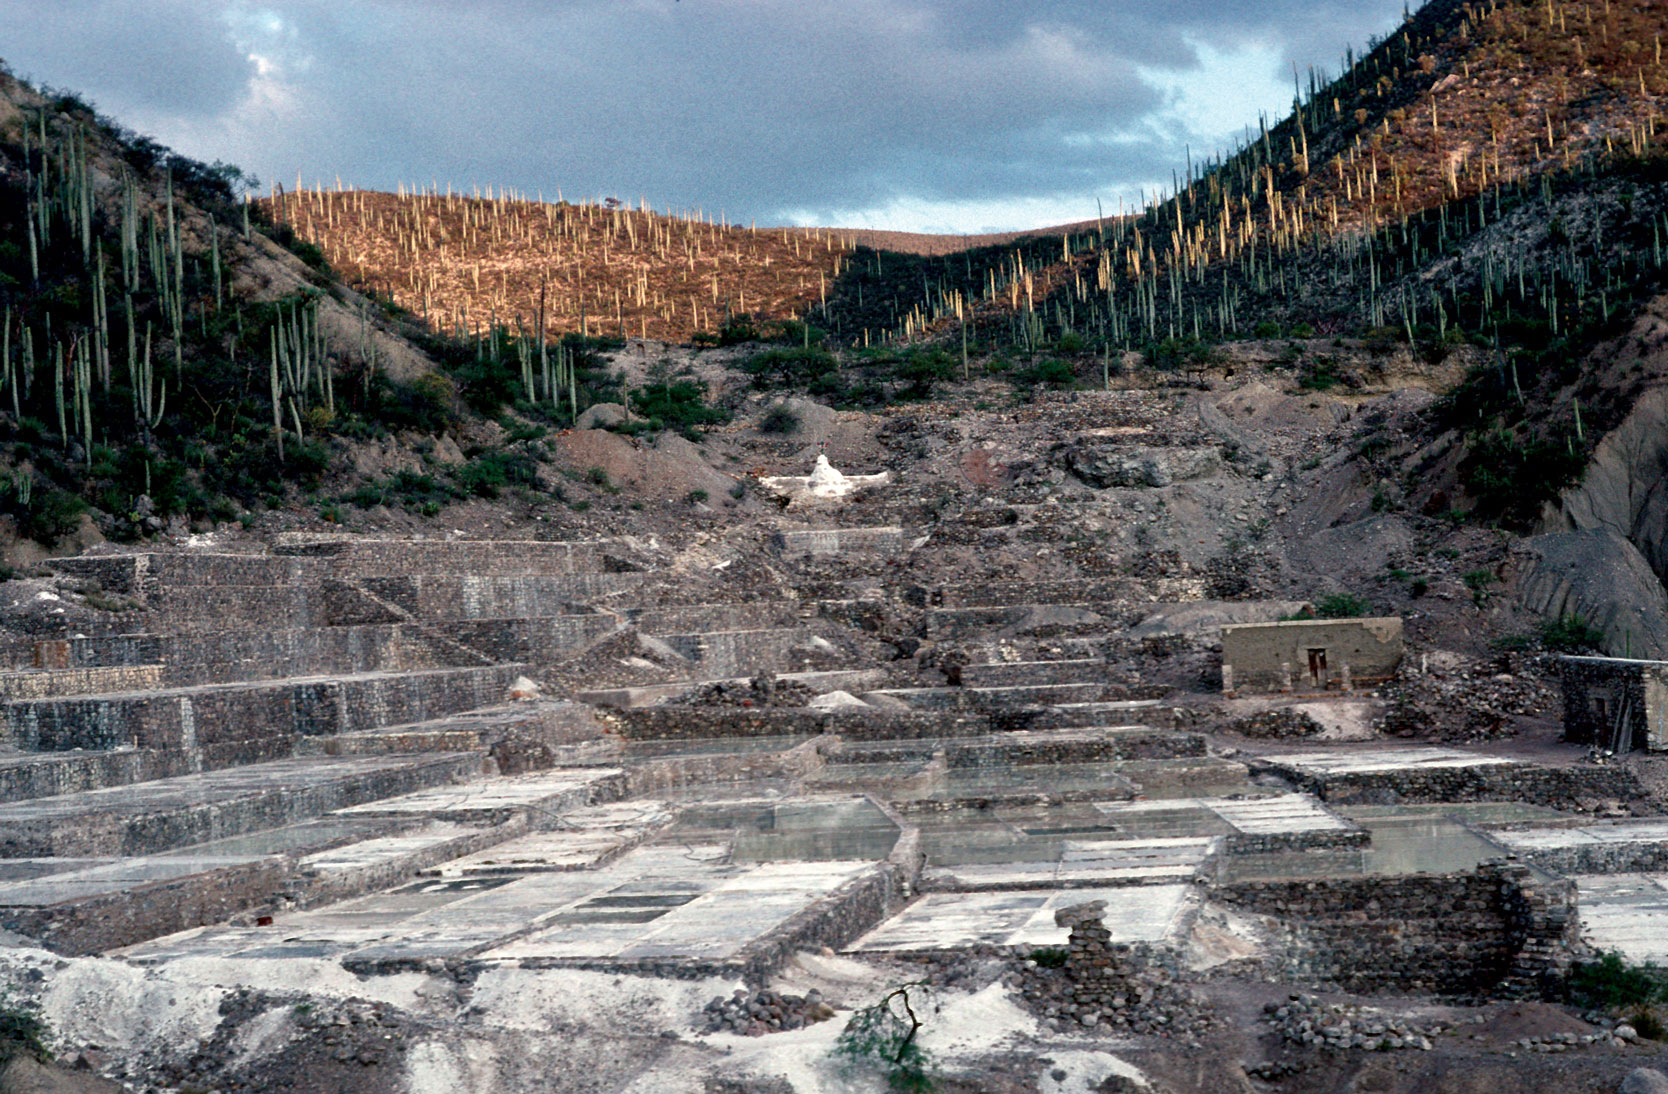 An archaeological site in Tehuacan Valley, Puebla, Mexico surrounded by large populations of Neobuxbaumia columnar cactus.